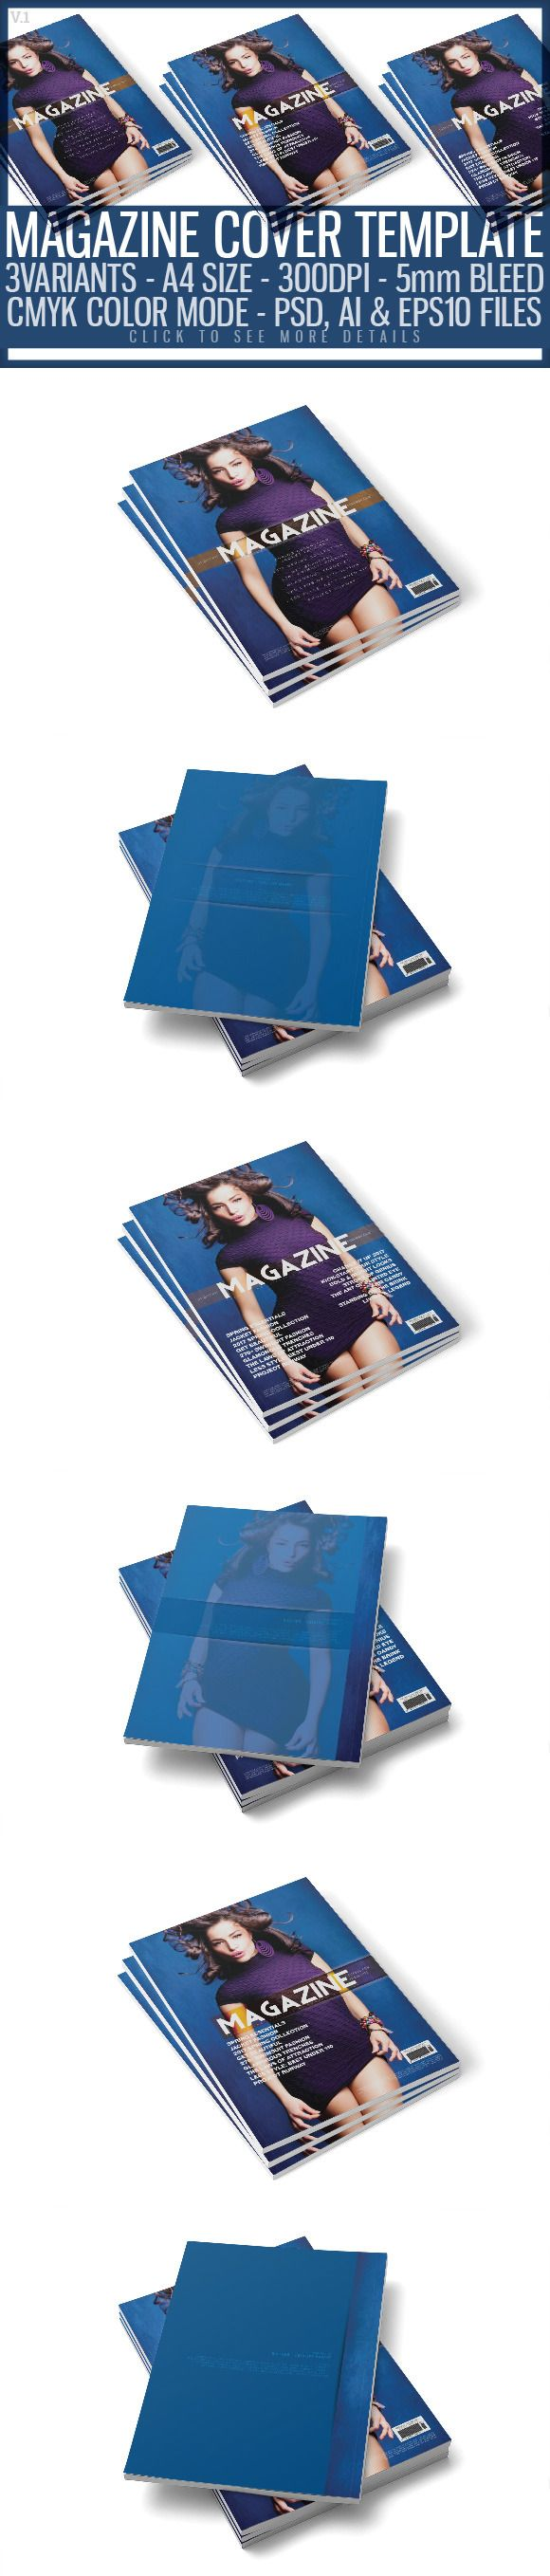 Magazine Cover Template 8 by @Graphicsauthor